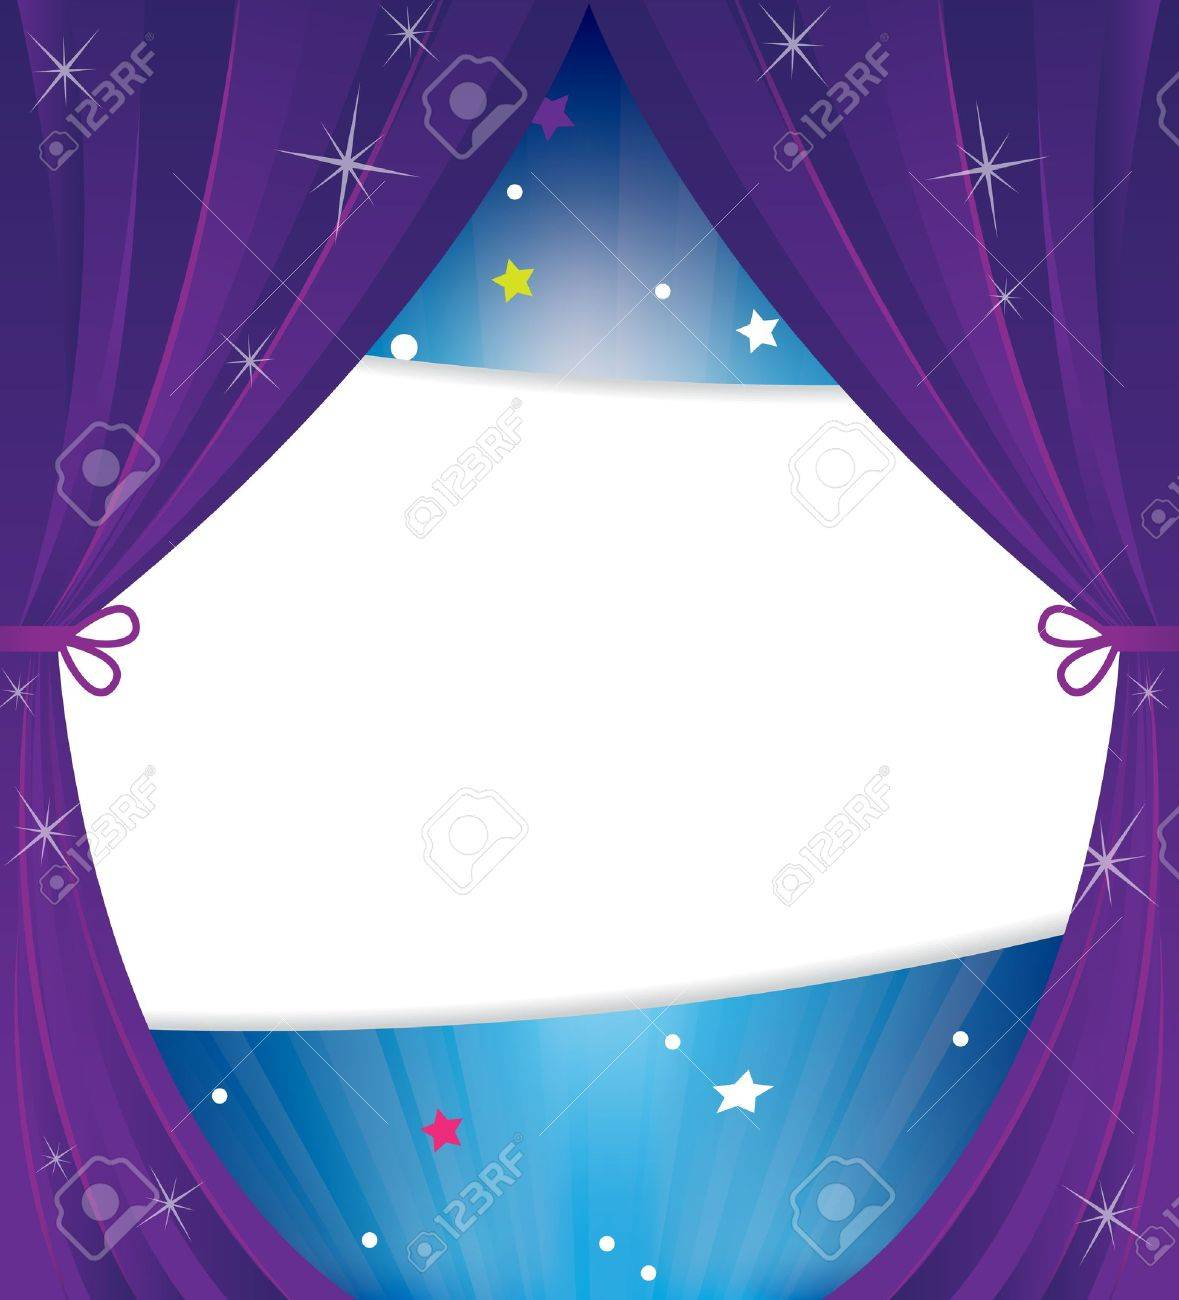 Theater curtain with stars and sparks.Abstract cartoon background - 21699821